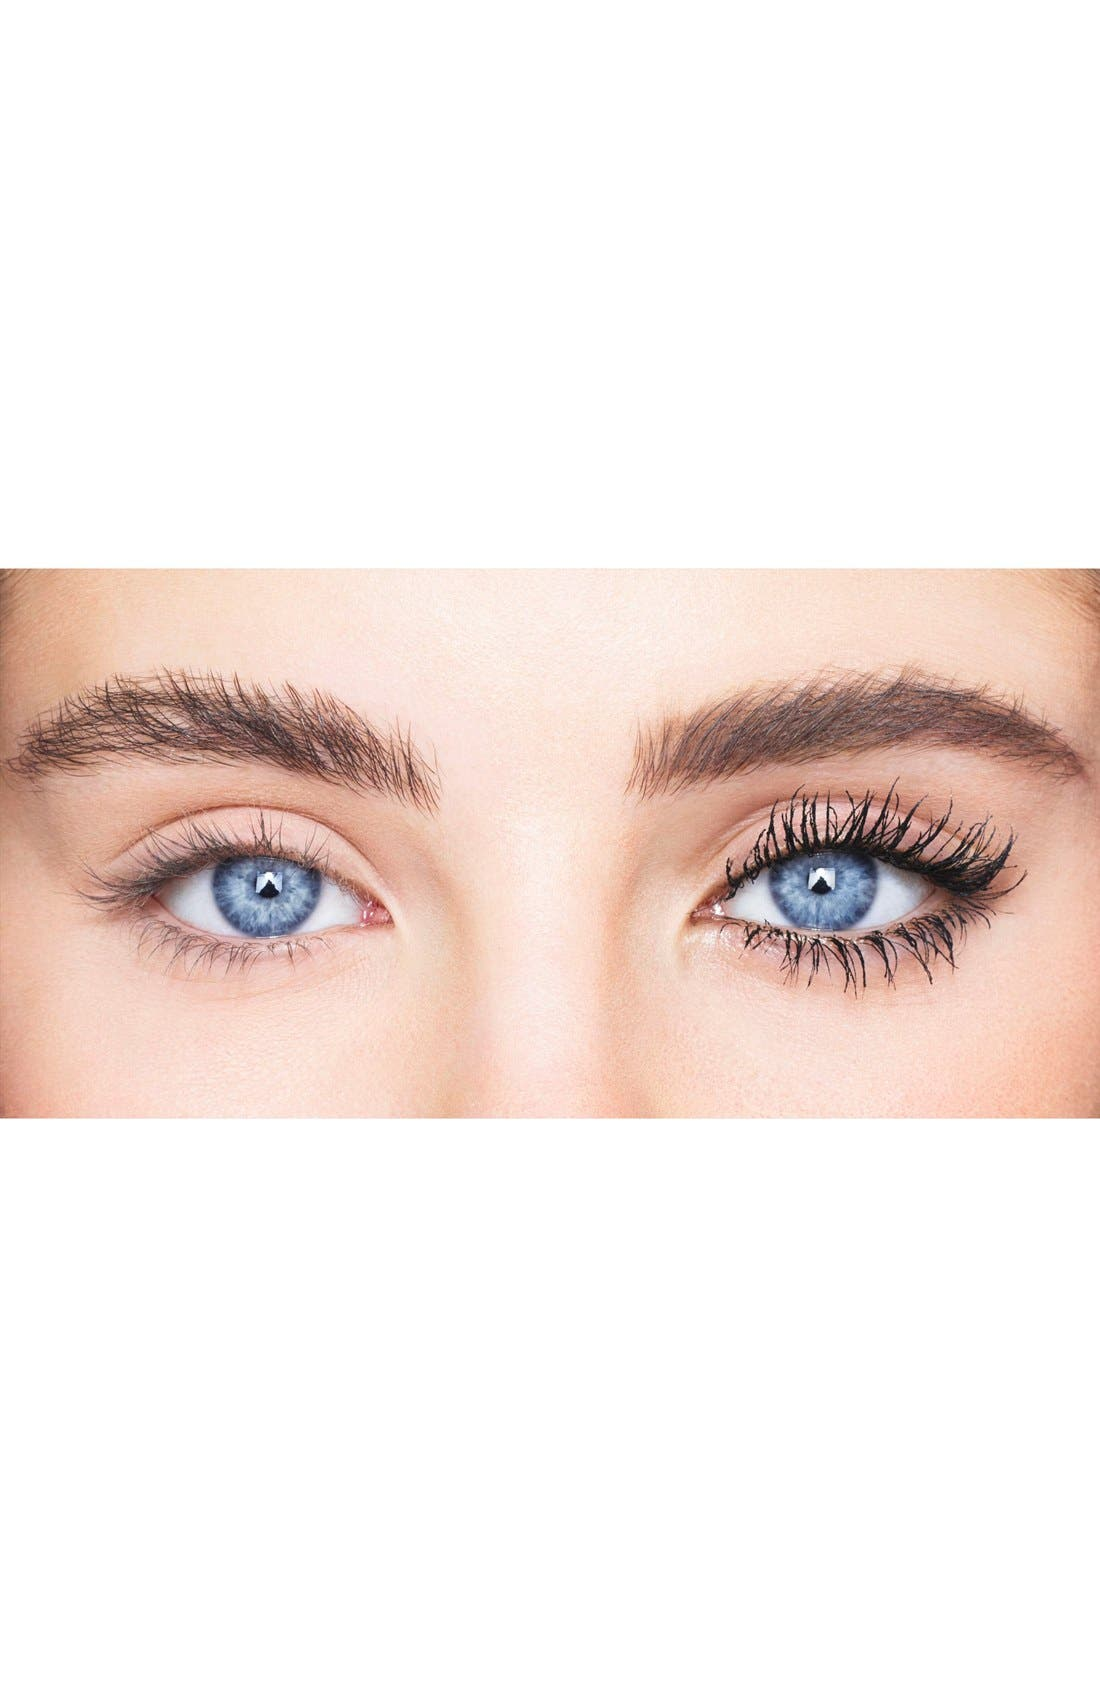 Legendary Lashes Mascara,                             Alternate thumbnail 2, color,                             001